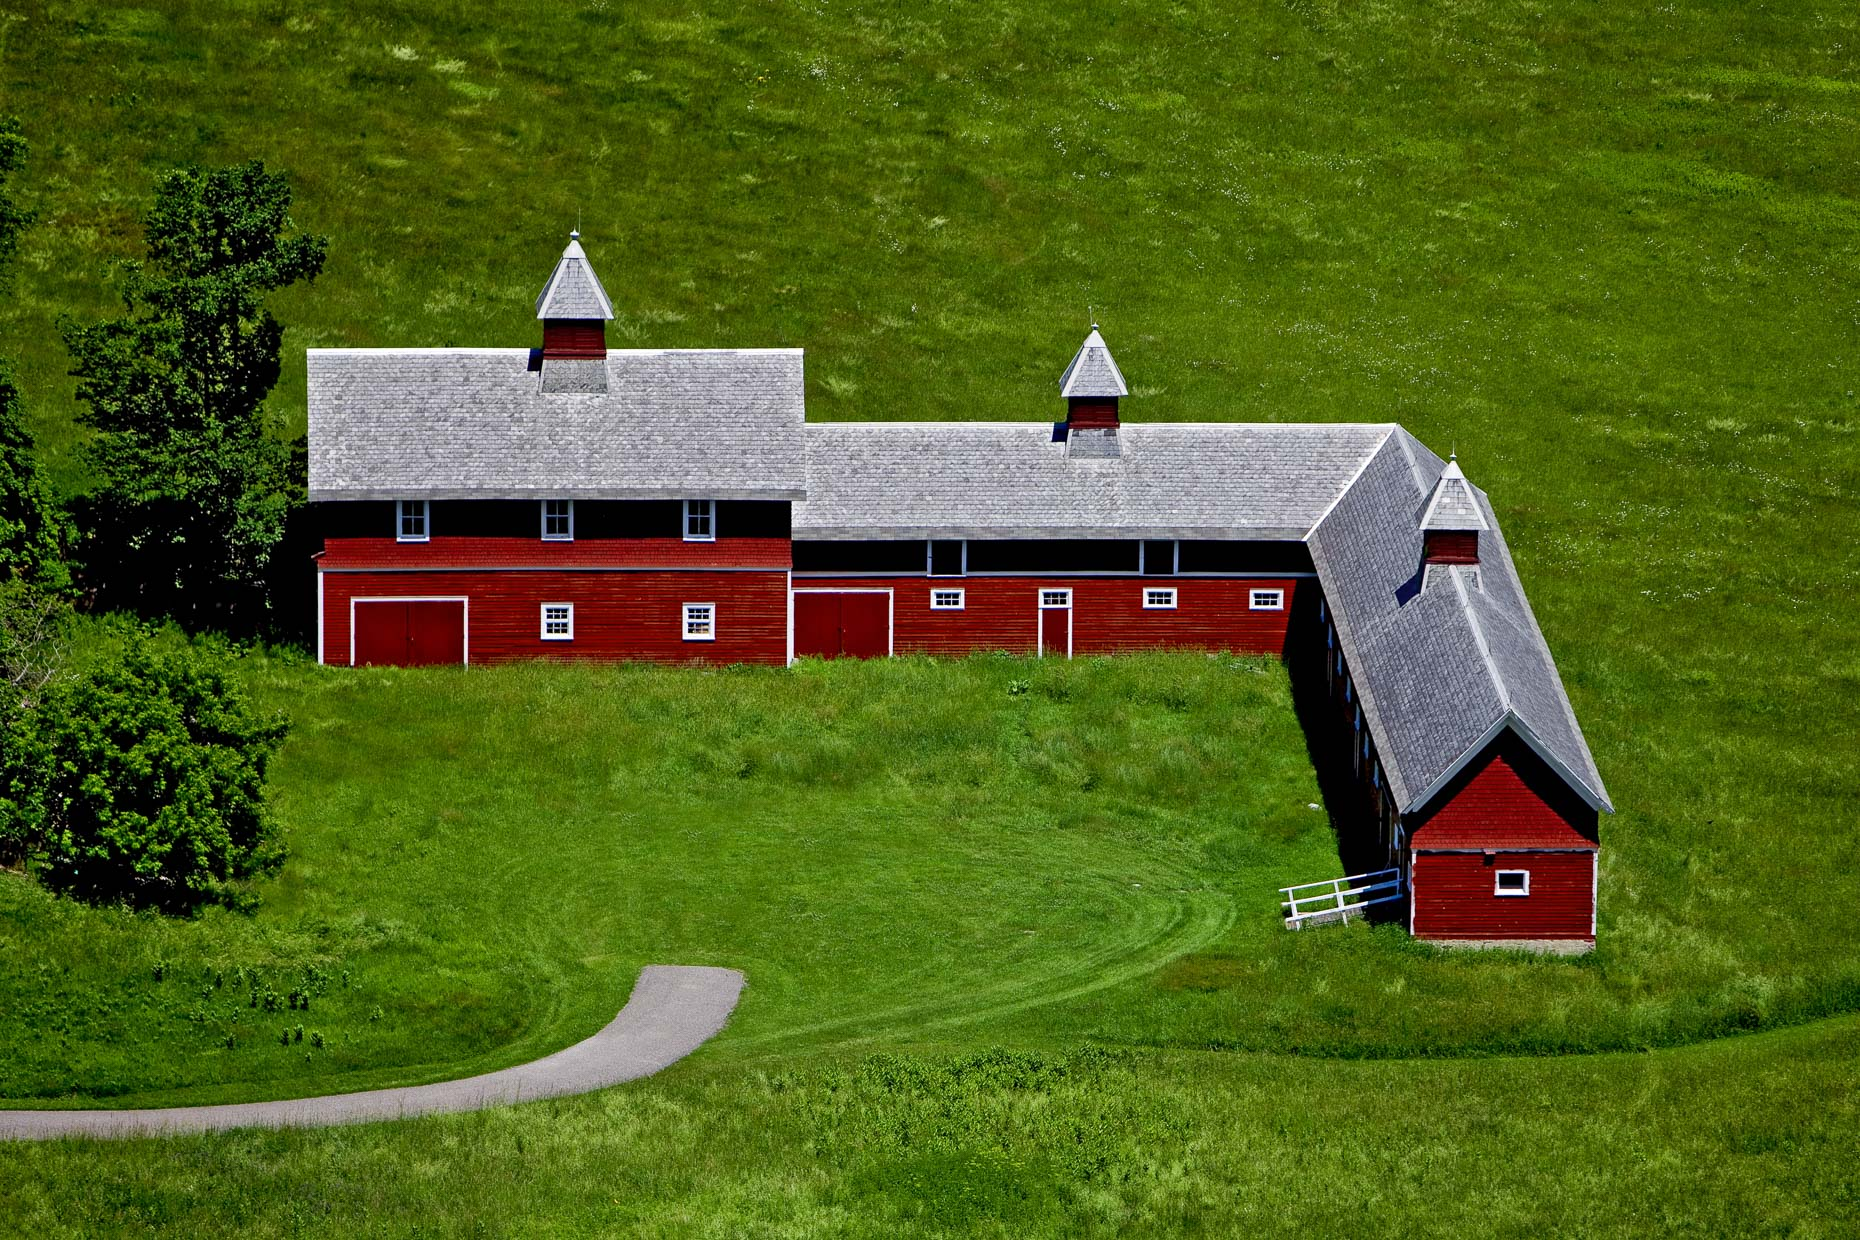 Aerial Photography of Rural Landscapes